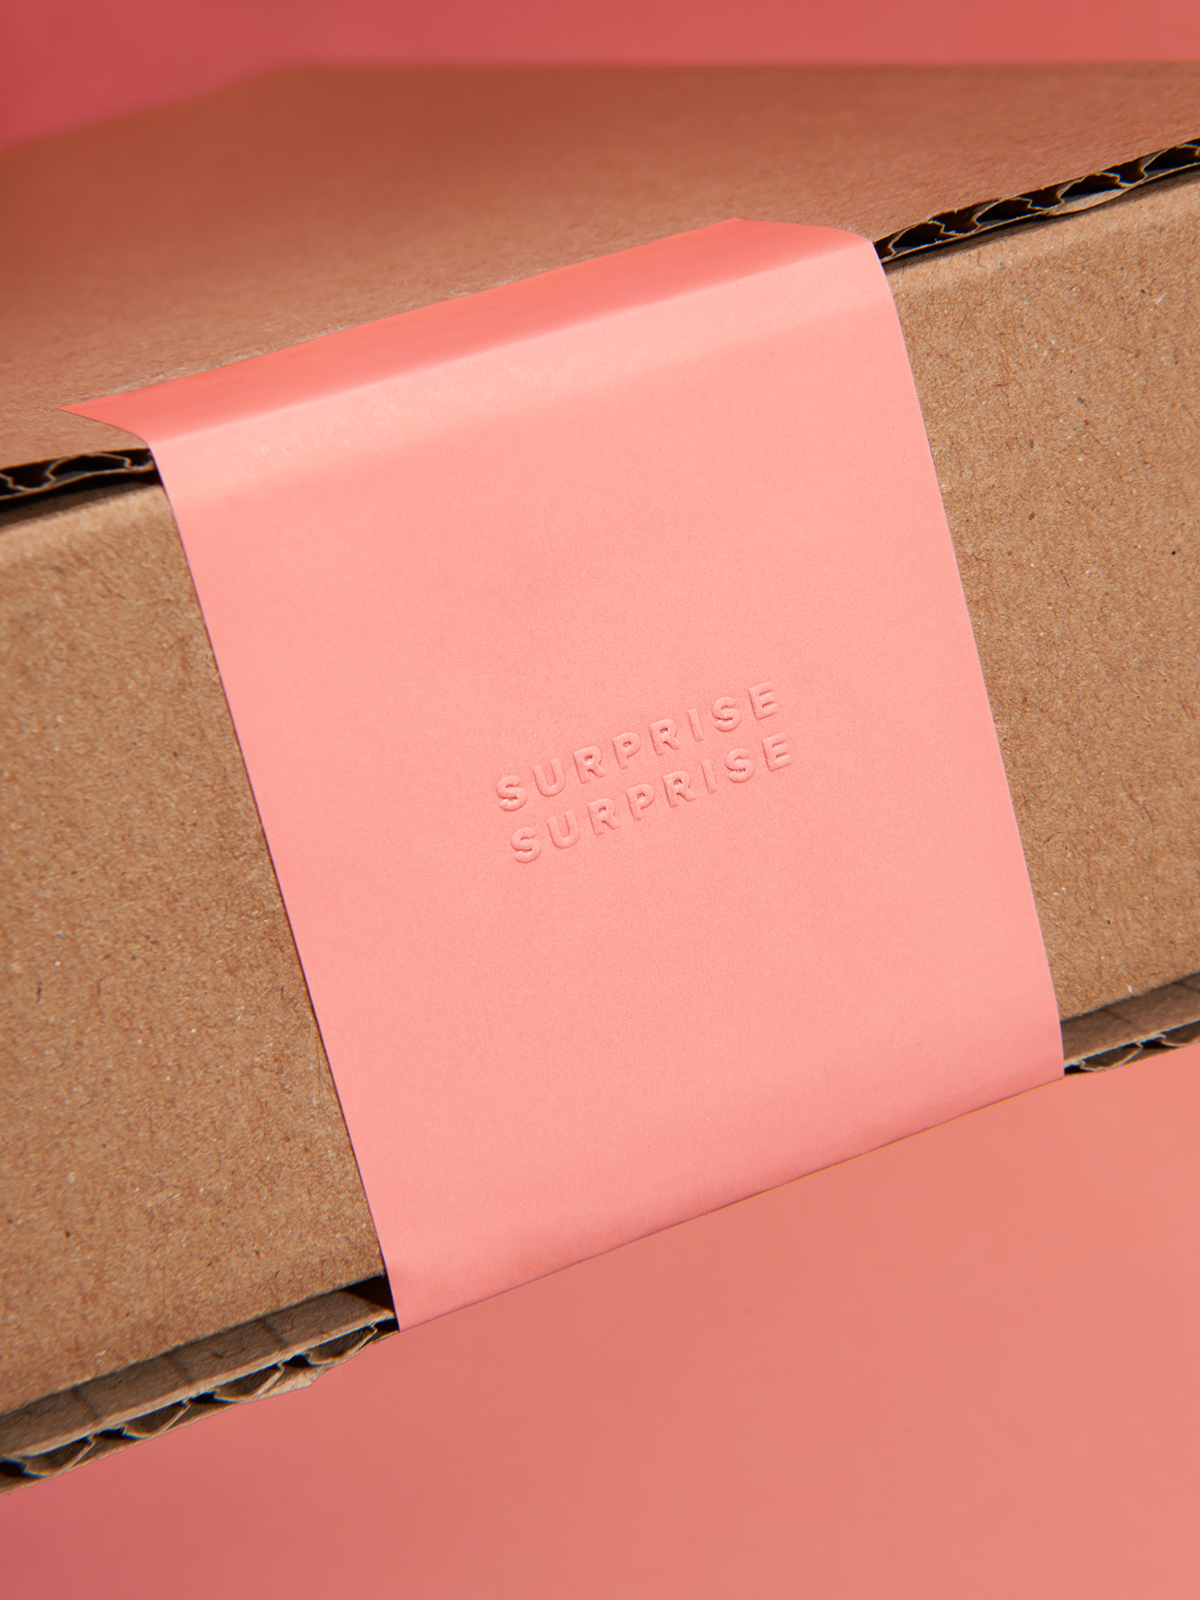 notebooks Blind Embossing Pantone special colors hotfoil Wrapping paper sticker Envelope Complimentcard